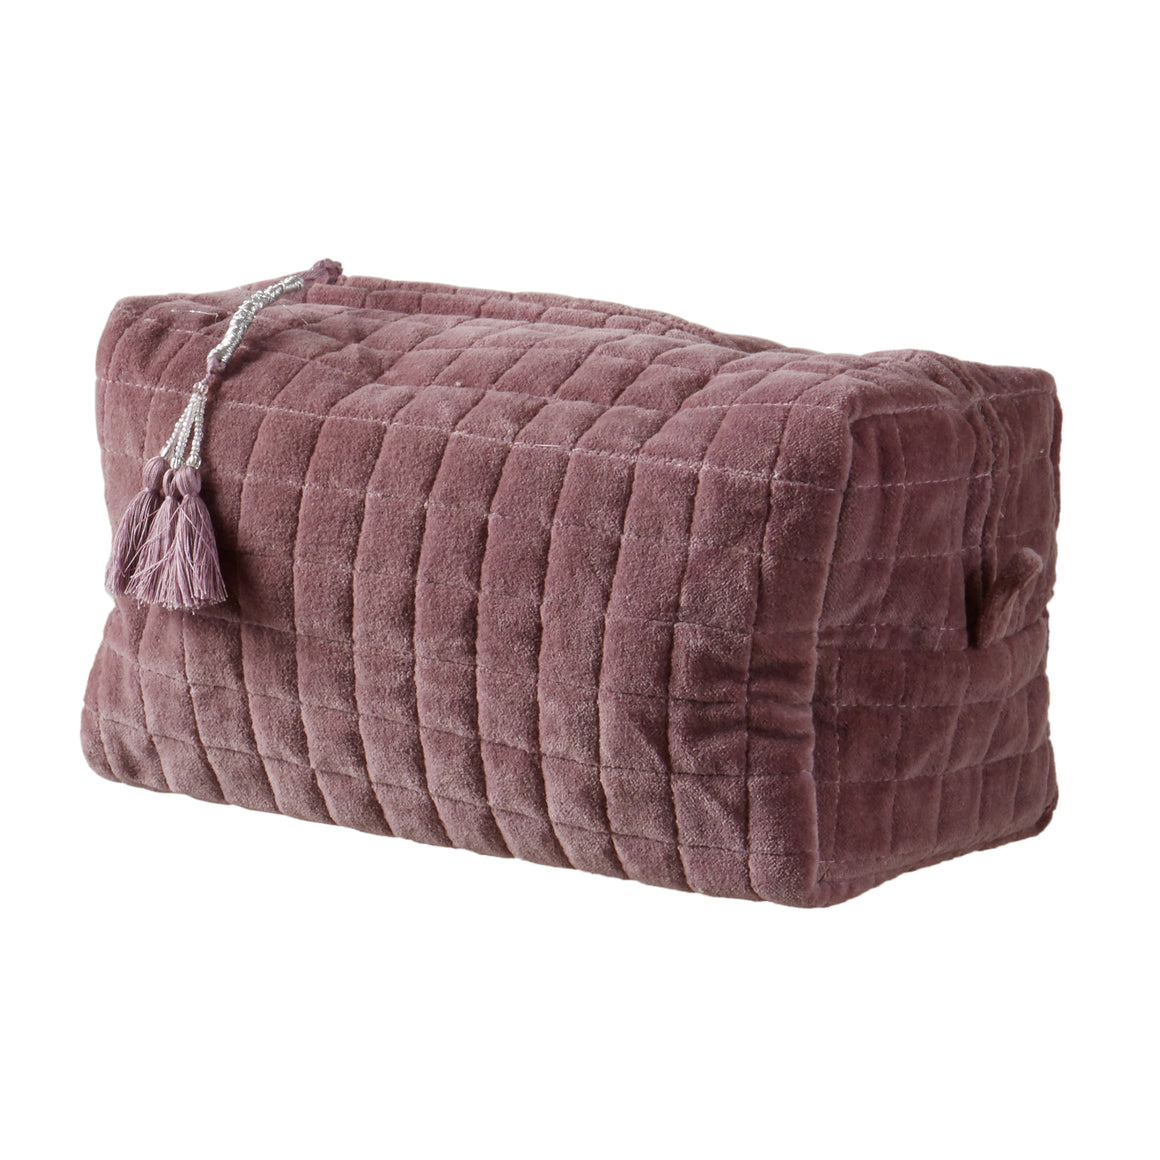 QUILTED VELVET COSMETIC BAG LIGHT PURPLE XL - McHugh Lifestyle RELAXED BOHO GLAMOUR